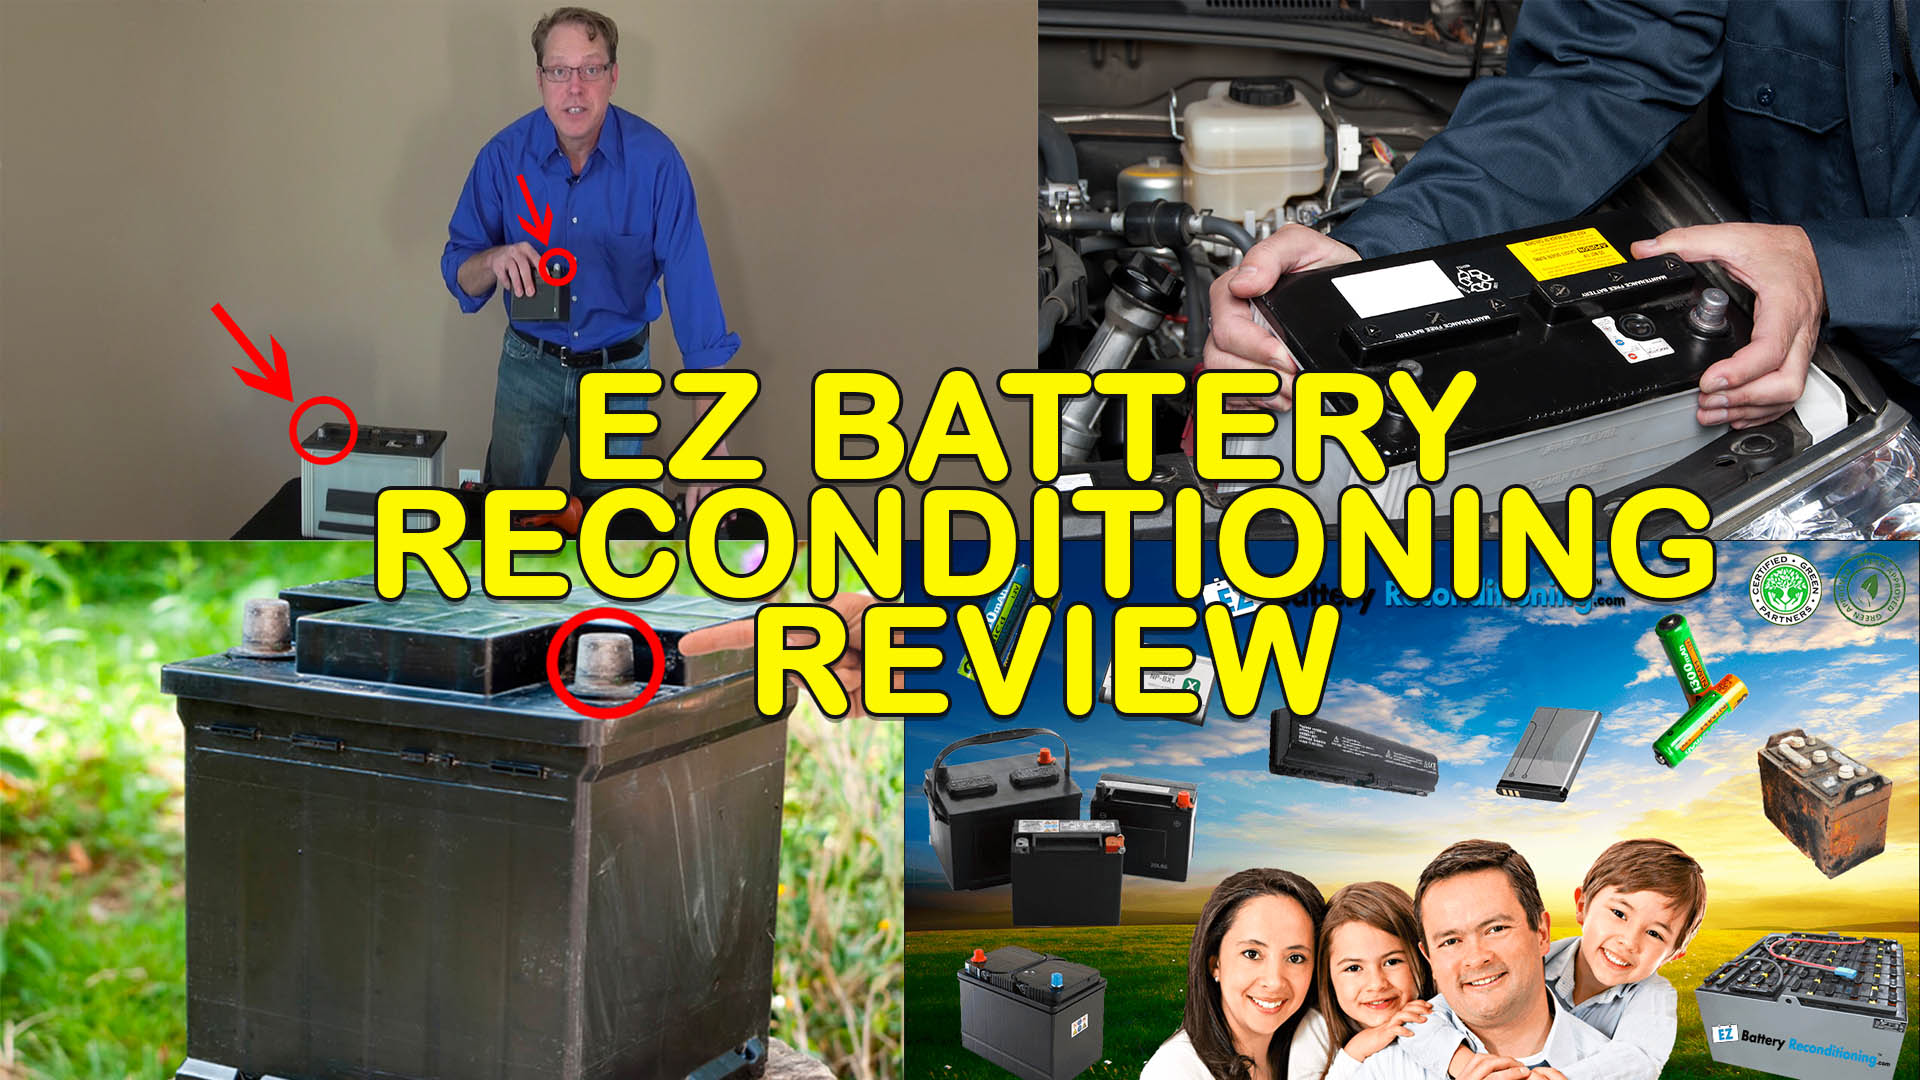 EZ Battery Reconditioning Review - Must Read Before Buying